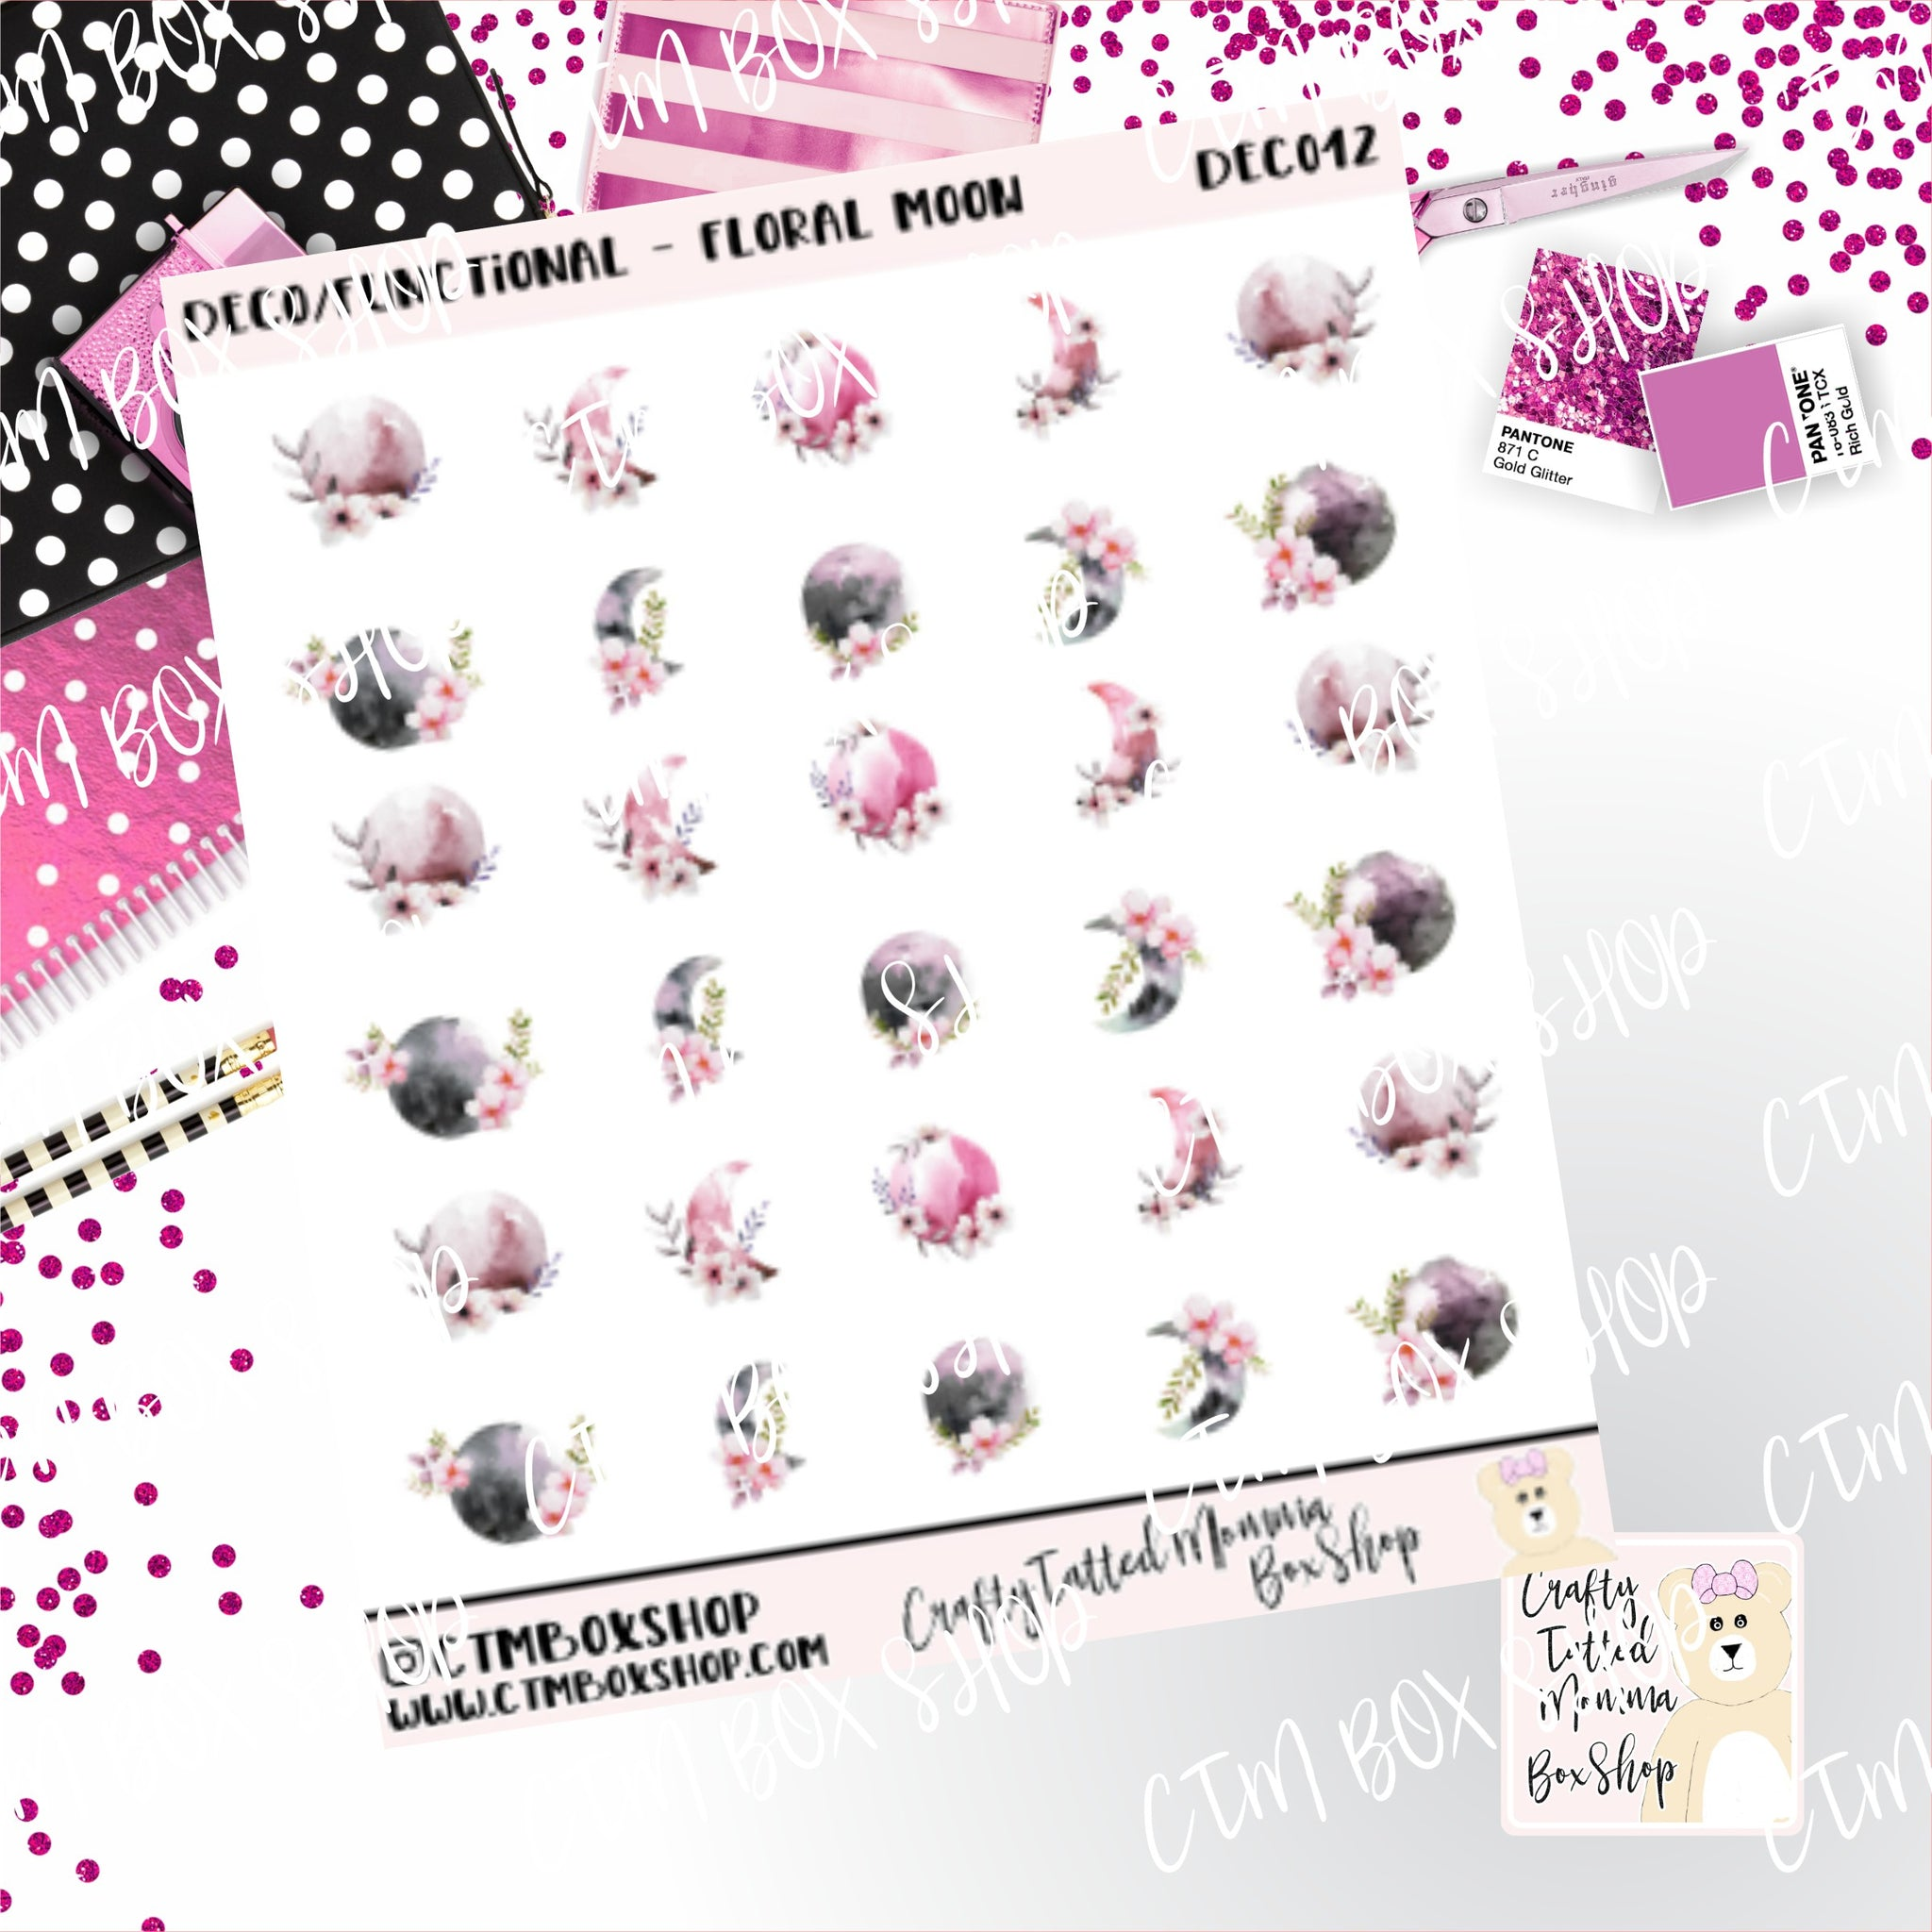 Floral Moon Stickers, Planner Stickers,  Functional Stickers   Deco Stickers